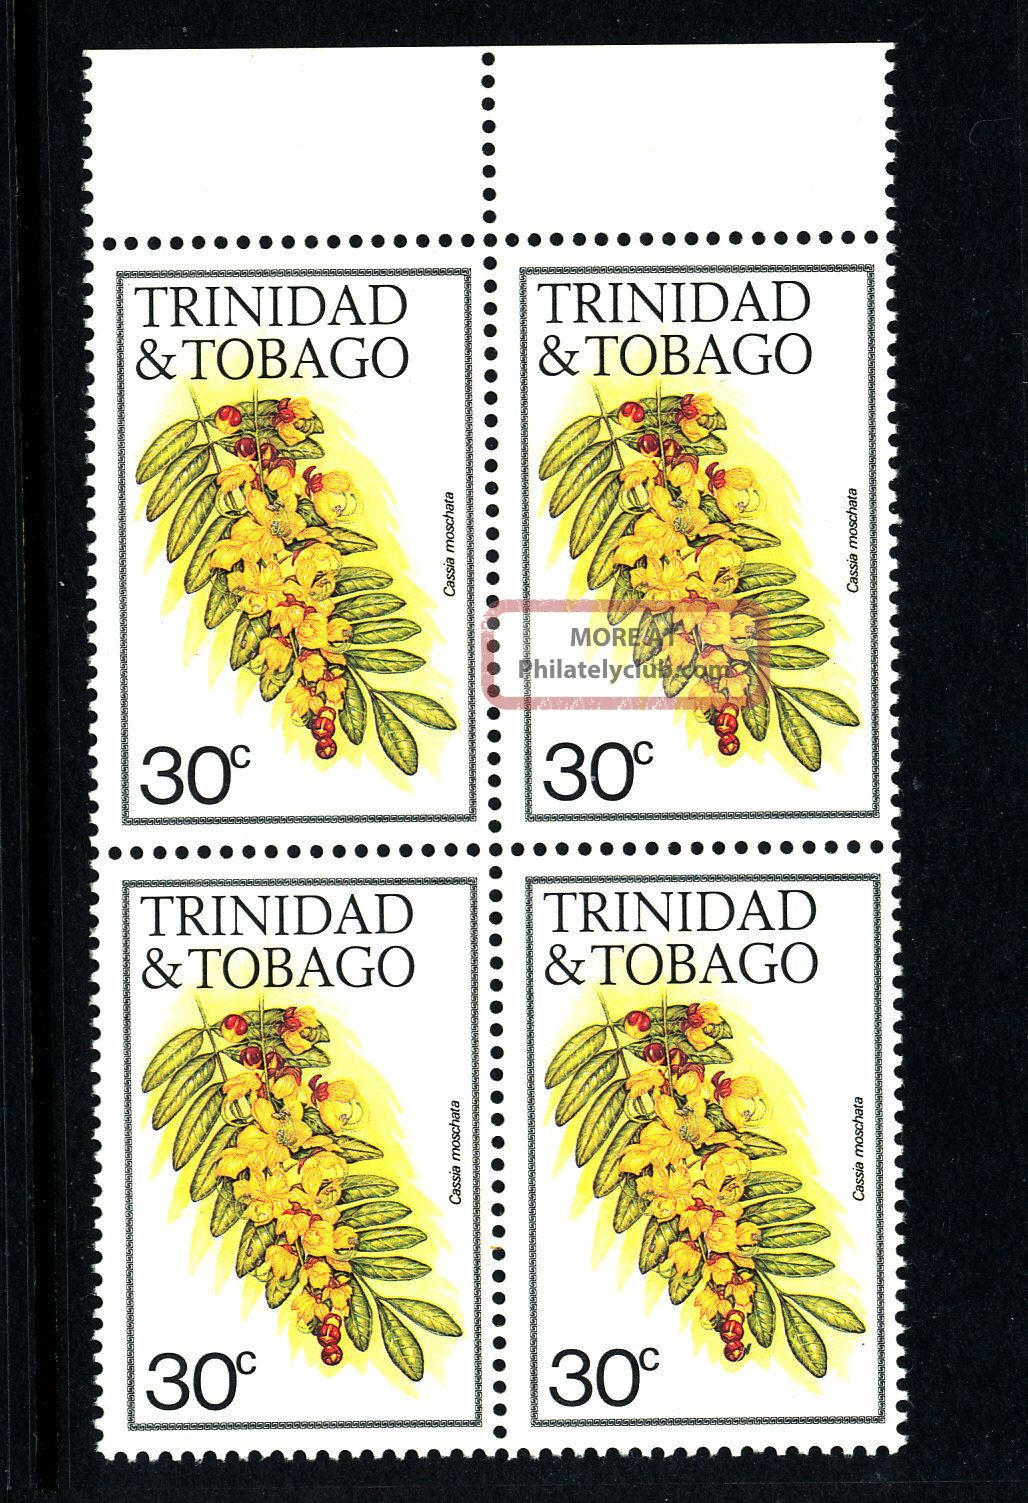 A480 Trinidad & Tobago 1983 Sg641a (block Of 4) 30c Cassia Caribbean photo